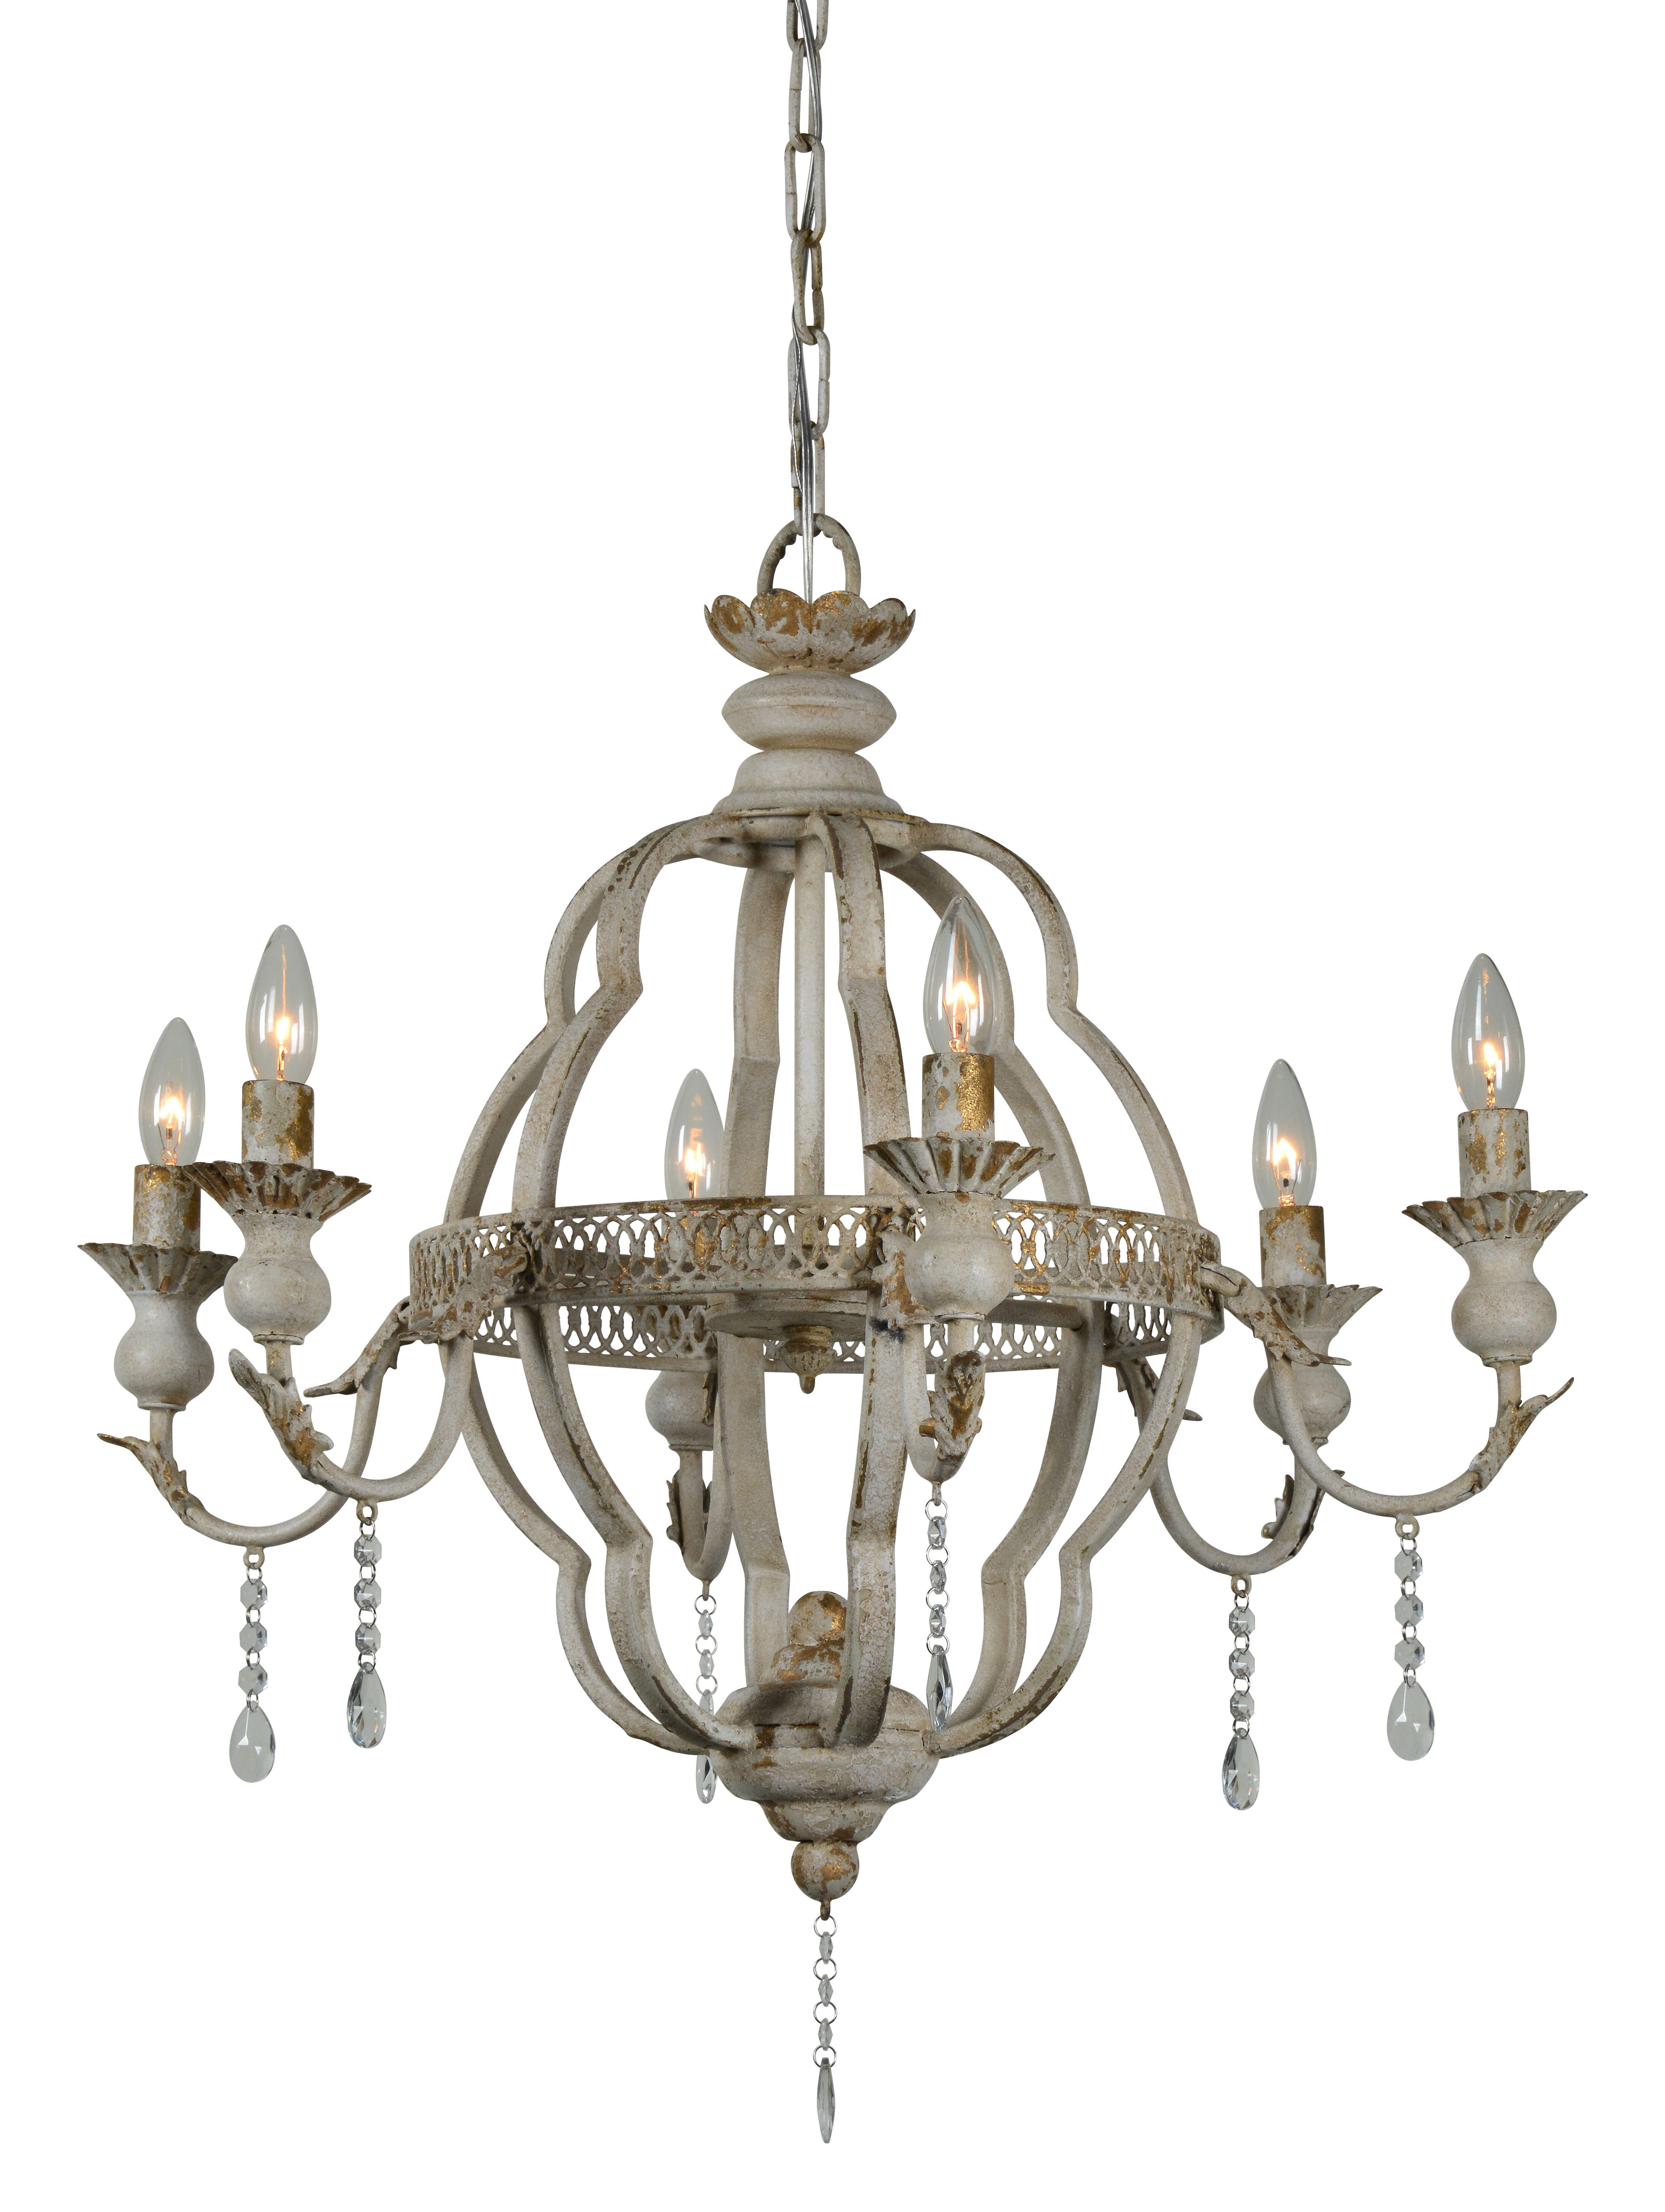 Best And Newest Lisa 6 Light Candle Style Chandelier Throughout Shaylee 6 Light Candle Style Chandeliers (View 18 of 25)